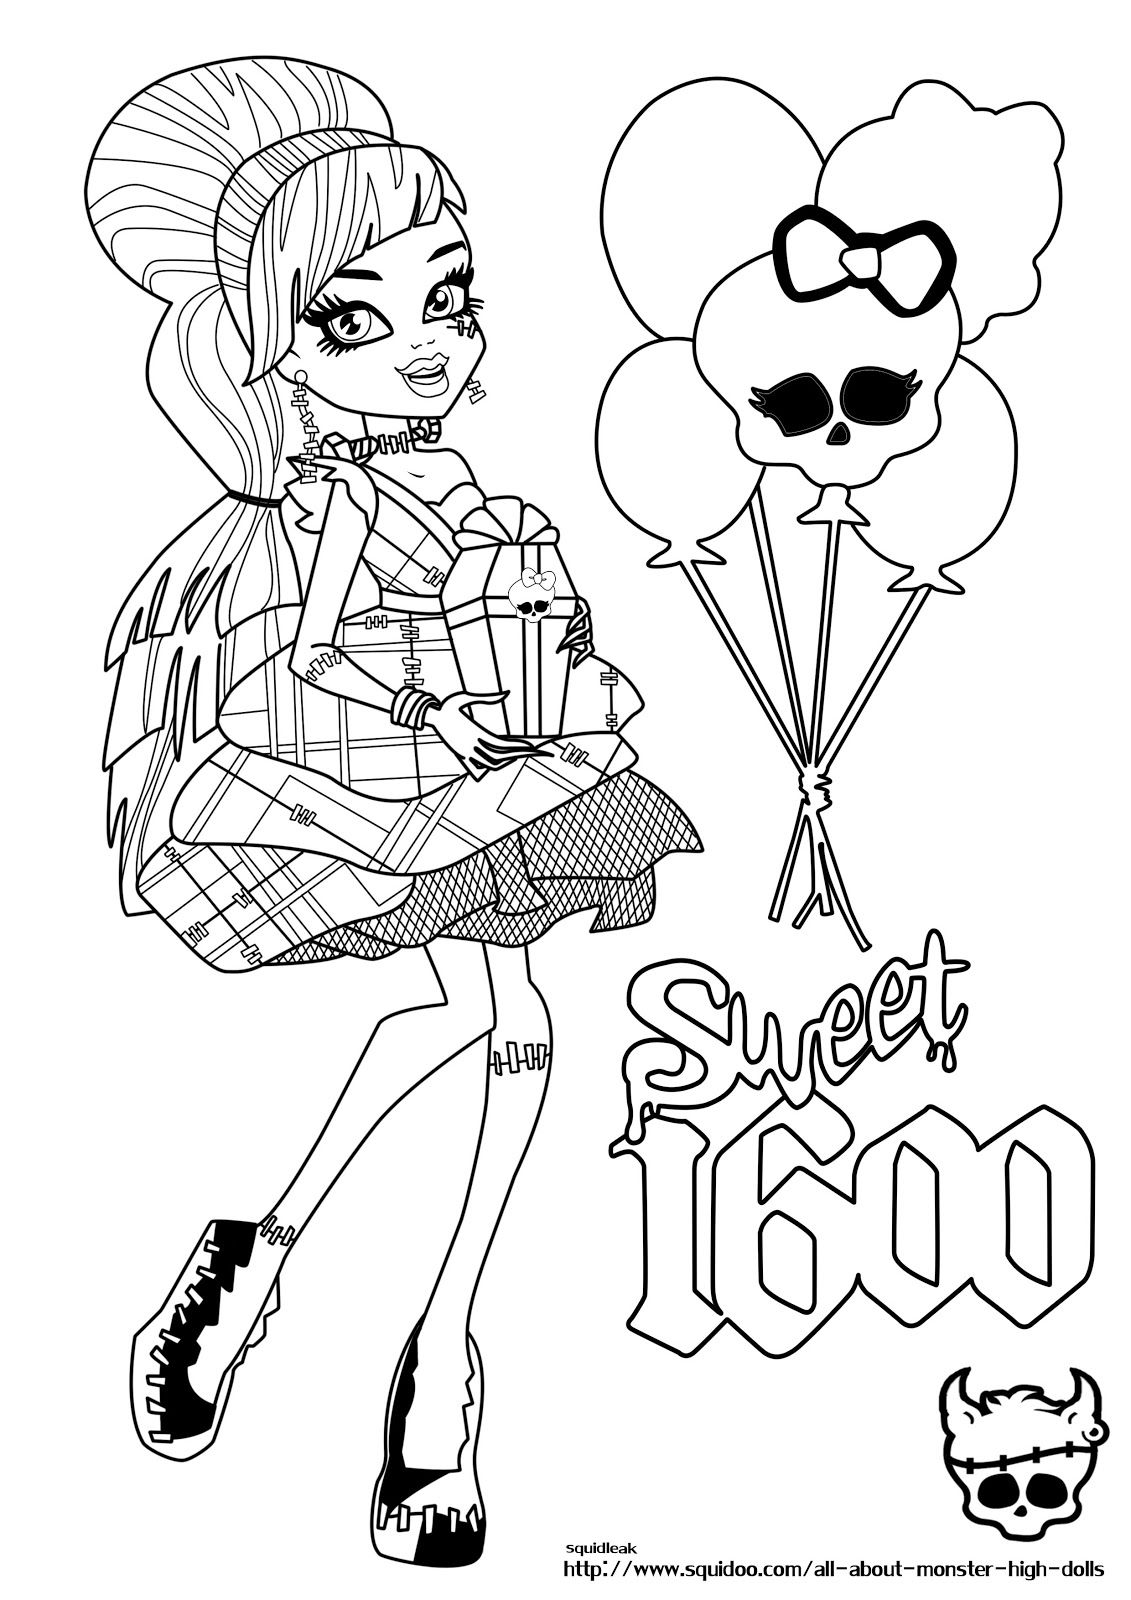 Coloring Pages Monster High Coloring Pages Frankie Stein 1000 images about monster high bday party on pinterest coloring pages logos and wolves